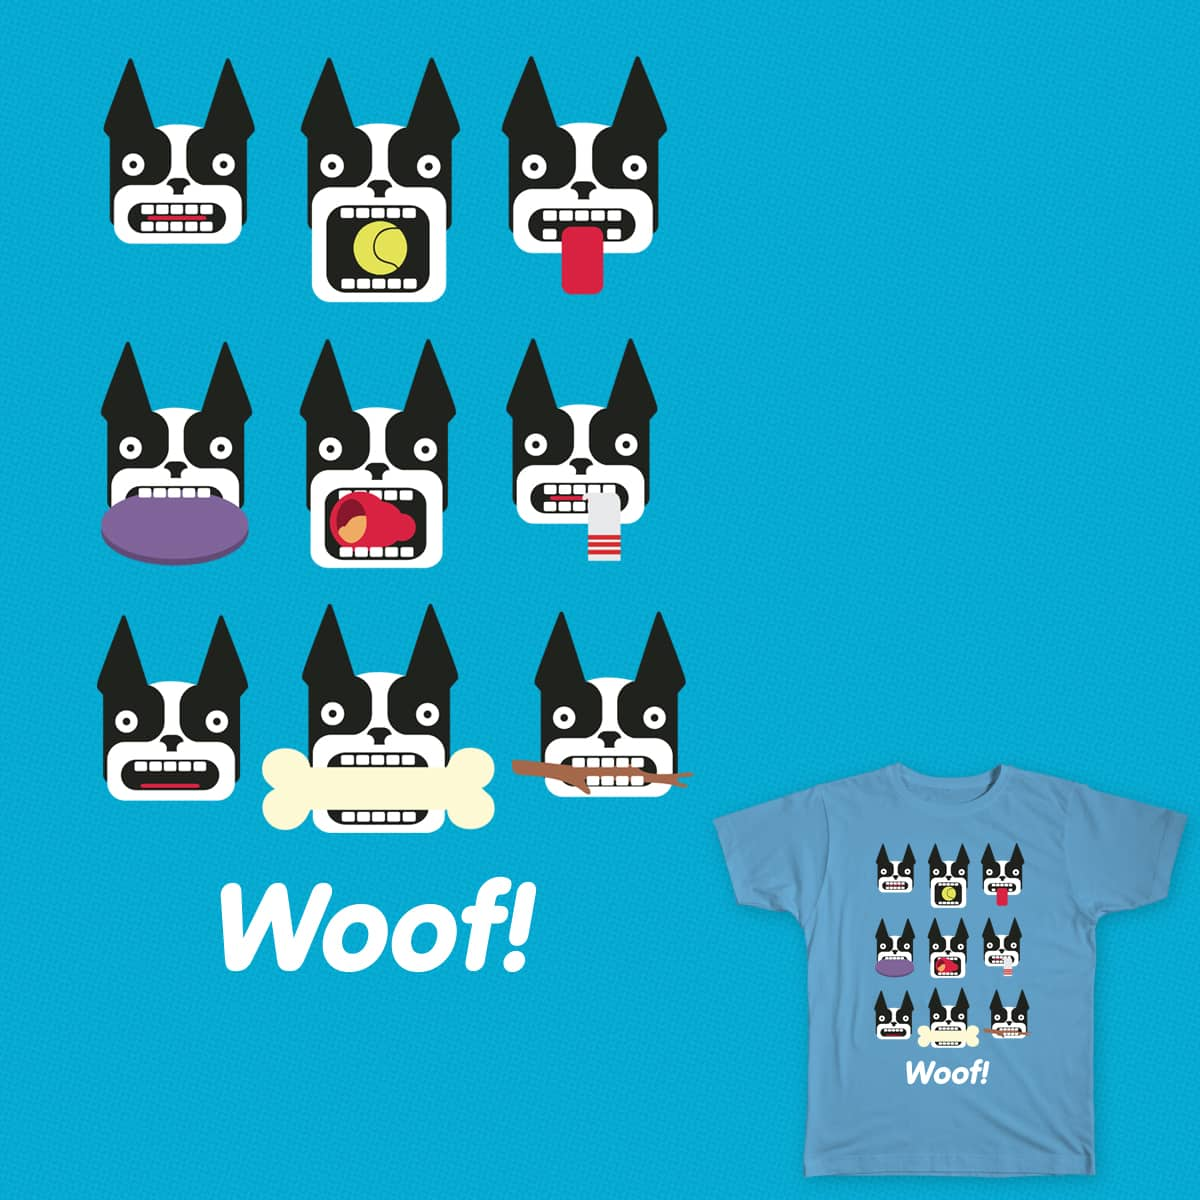 Woof! by alexizaguirre12 on Threadless